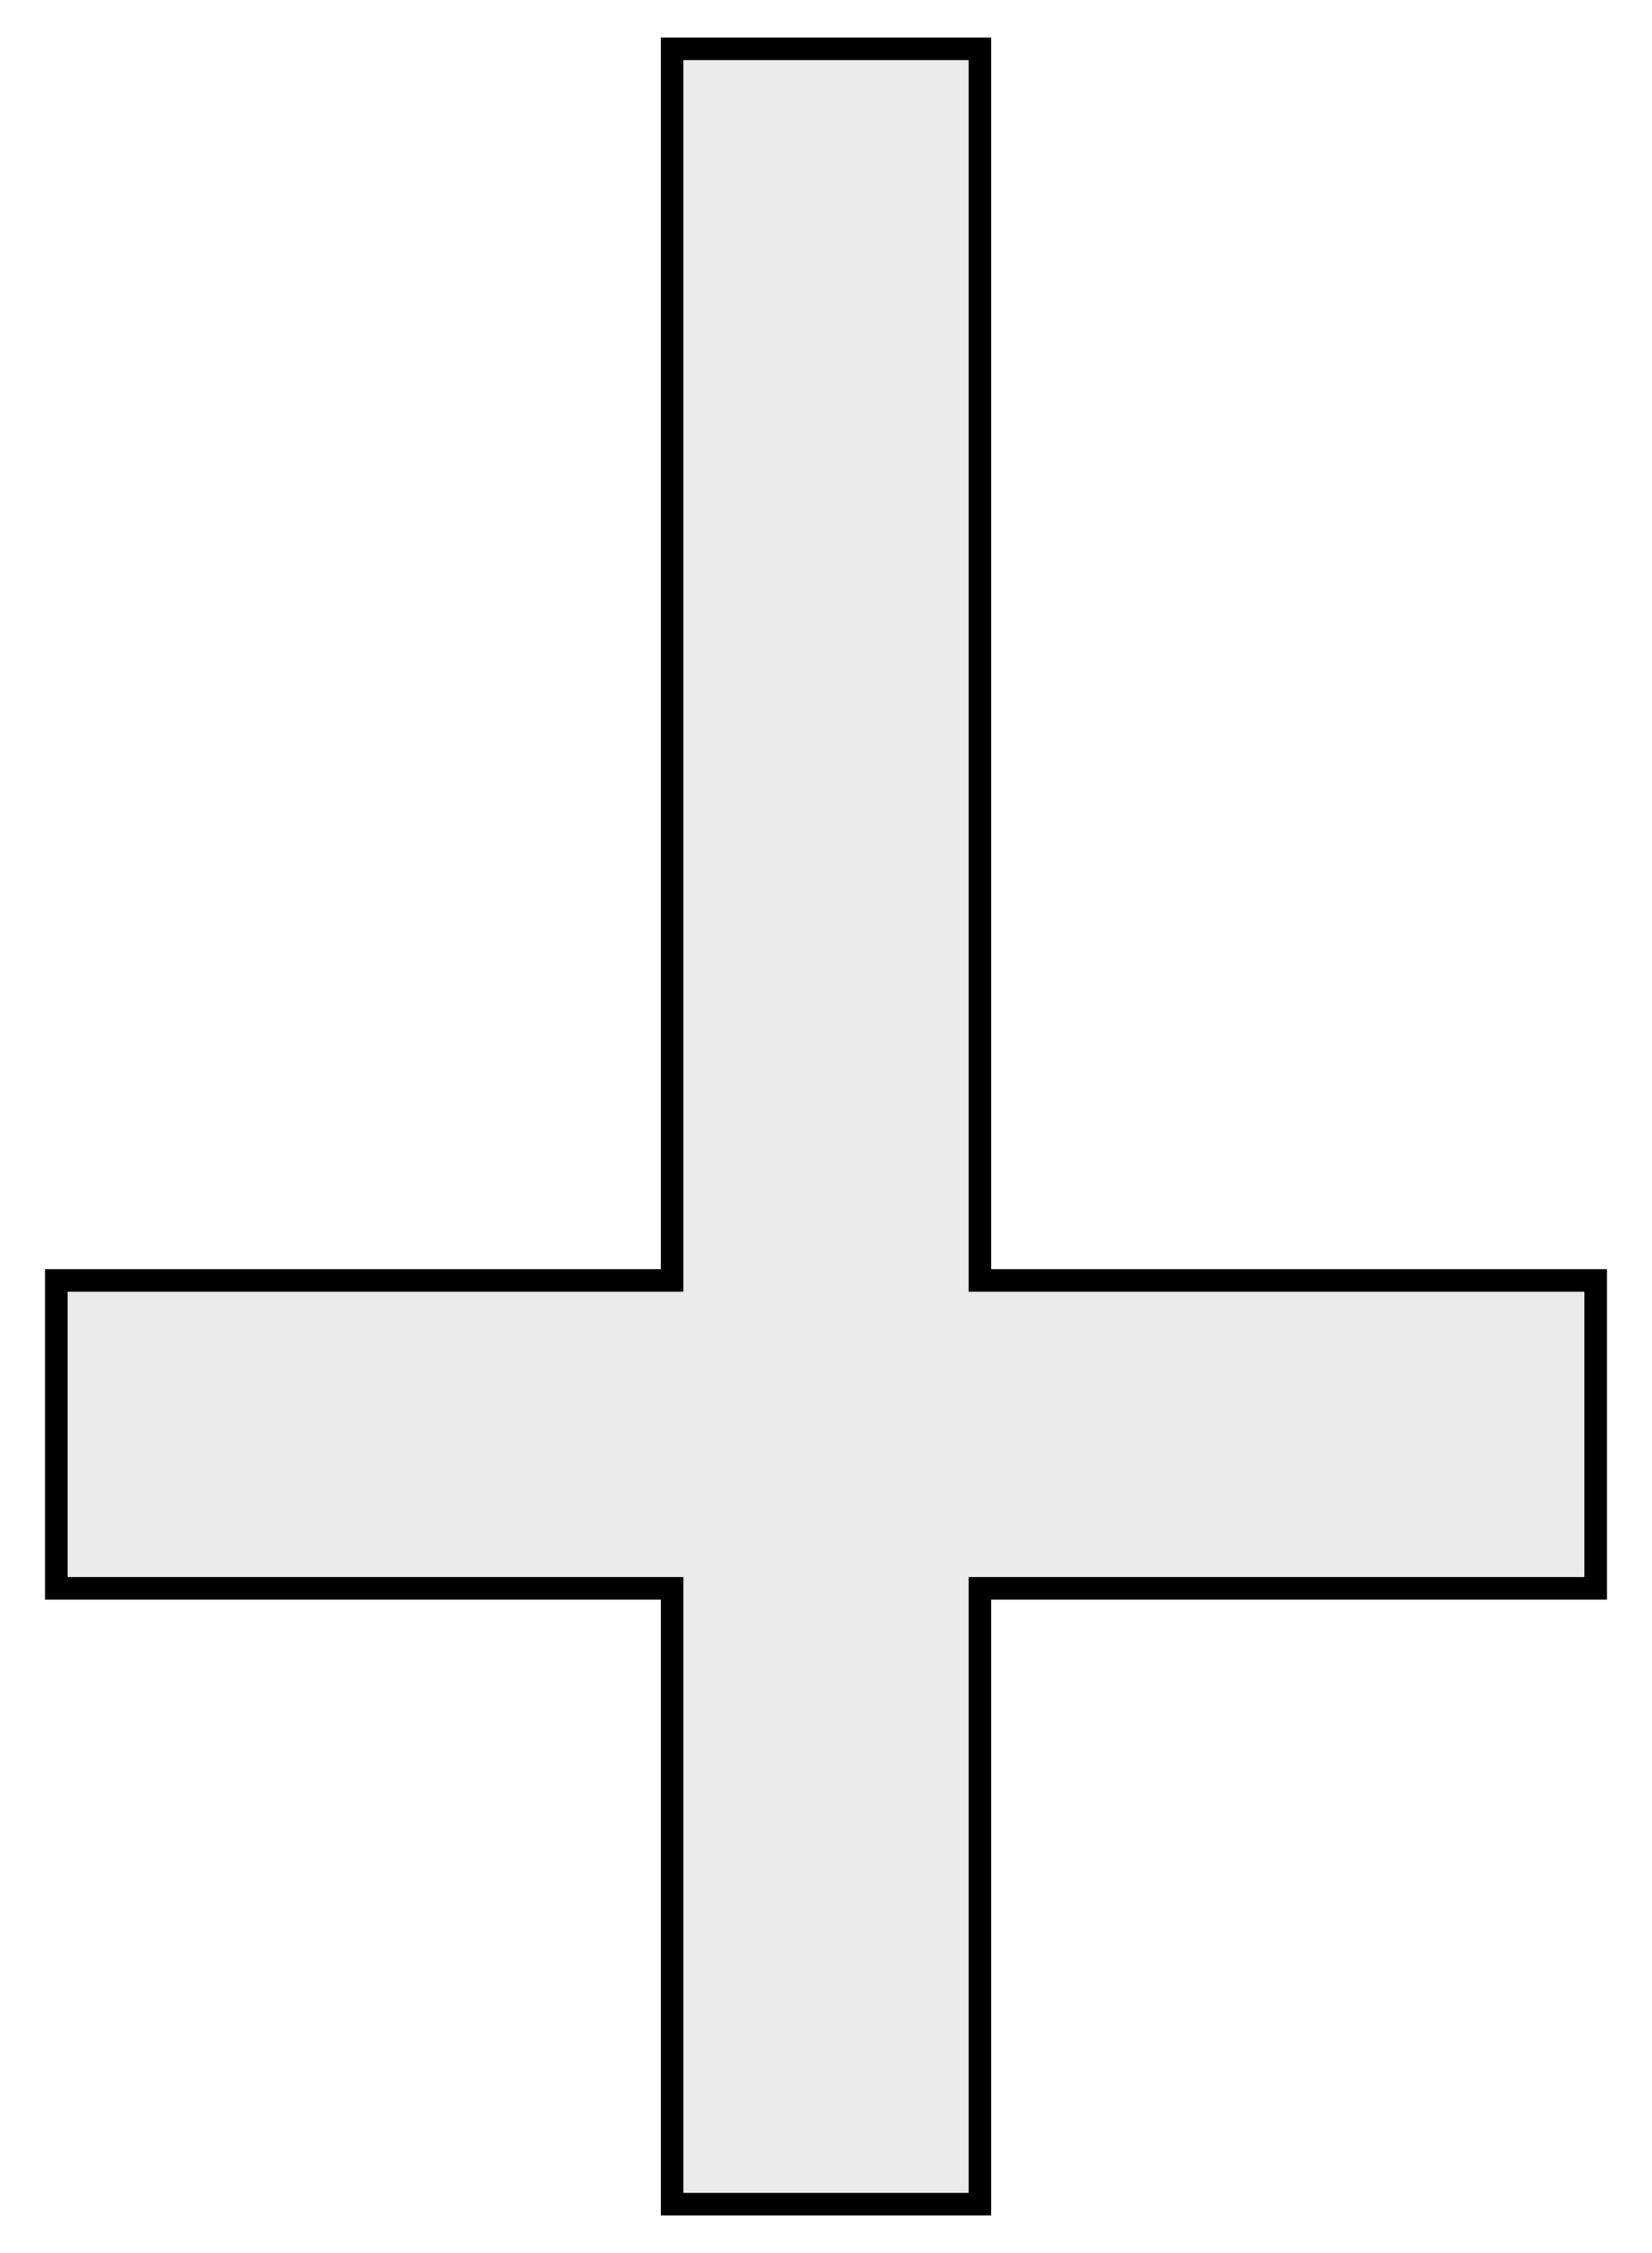 Upside down cross png. File coa illustration peter